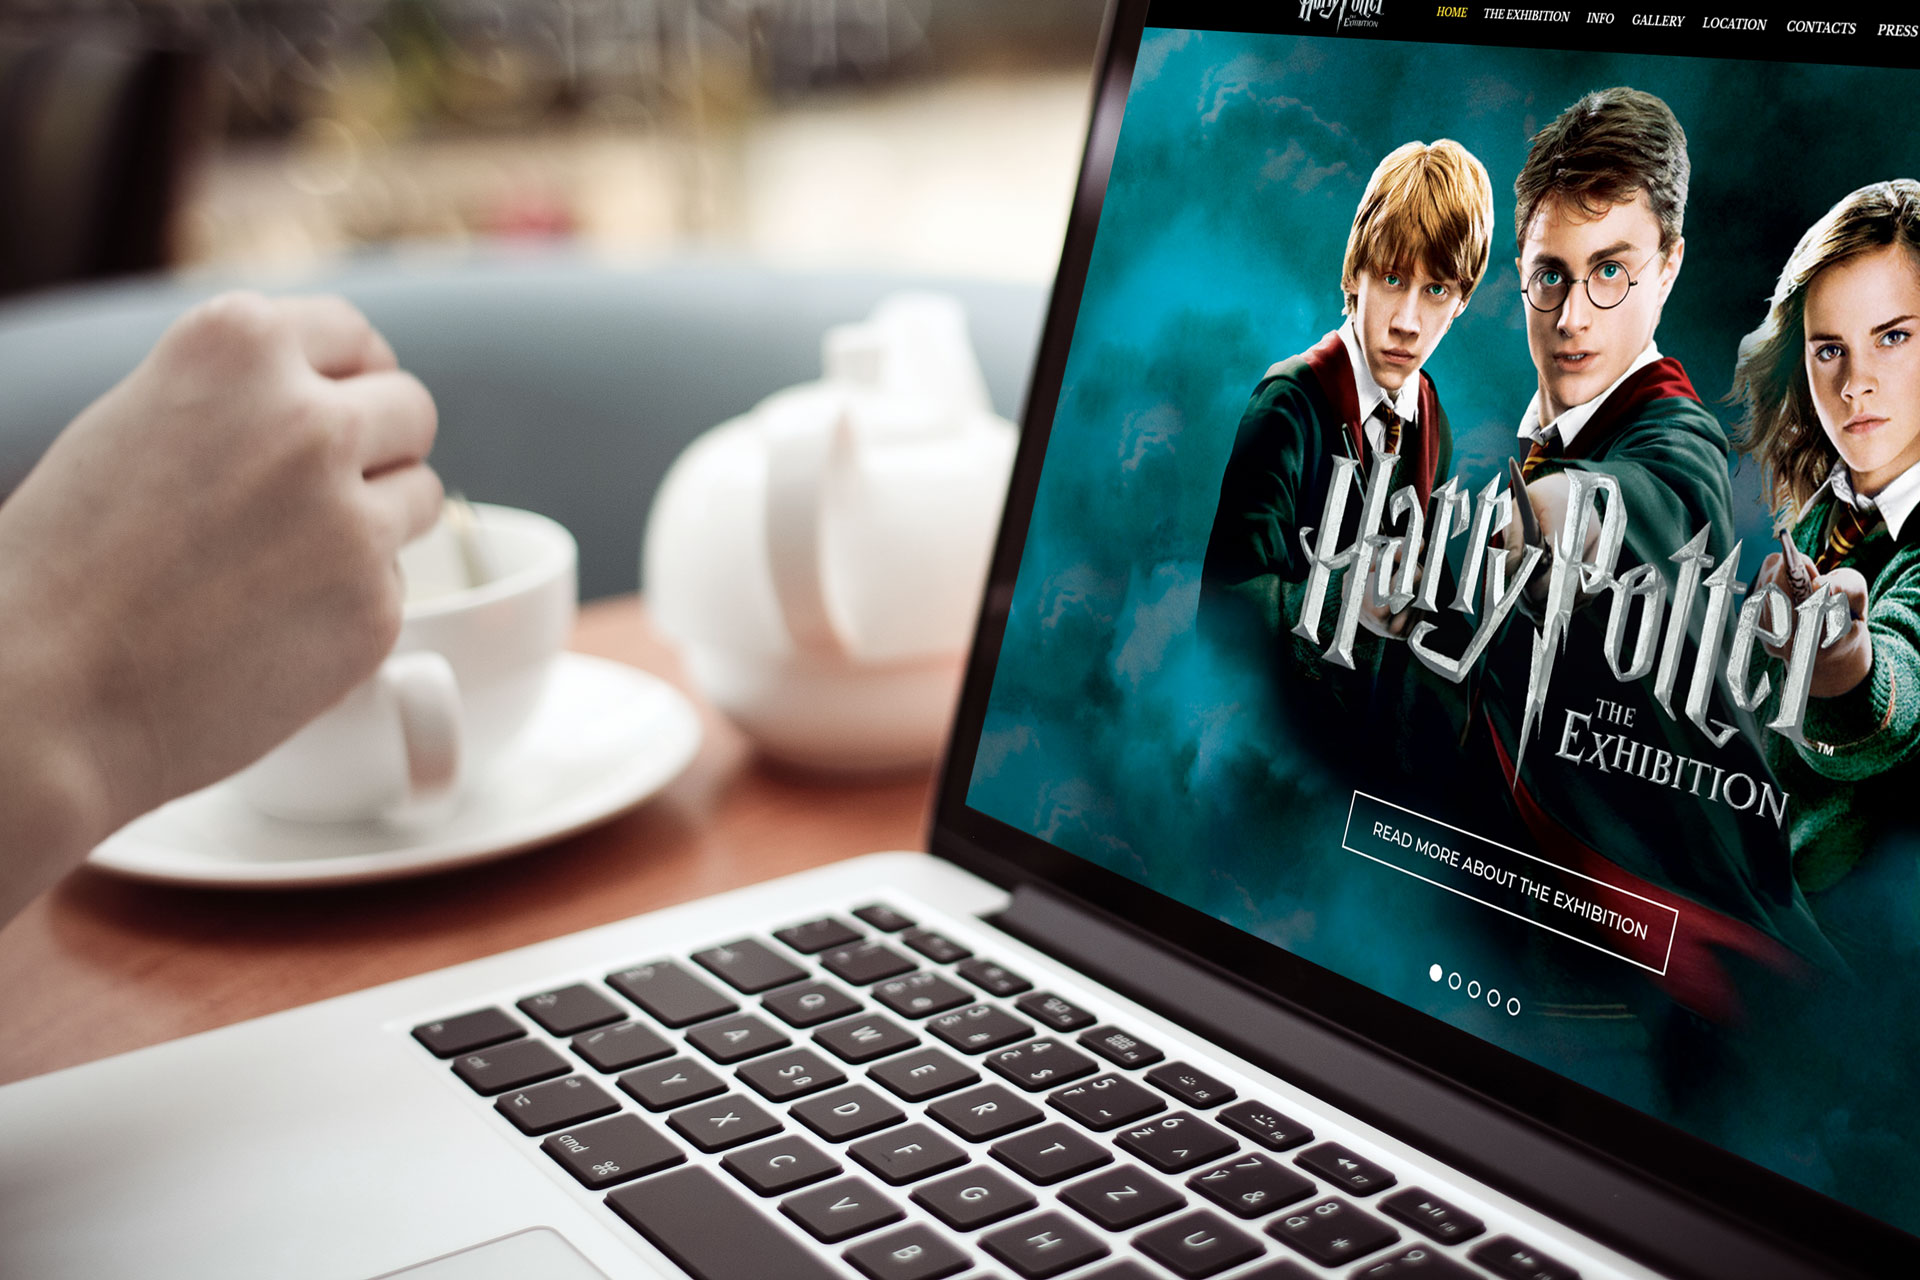 harrypotter-website1